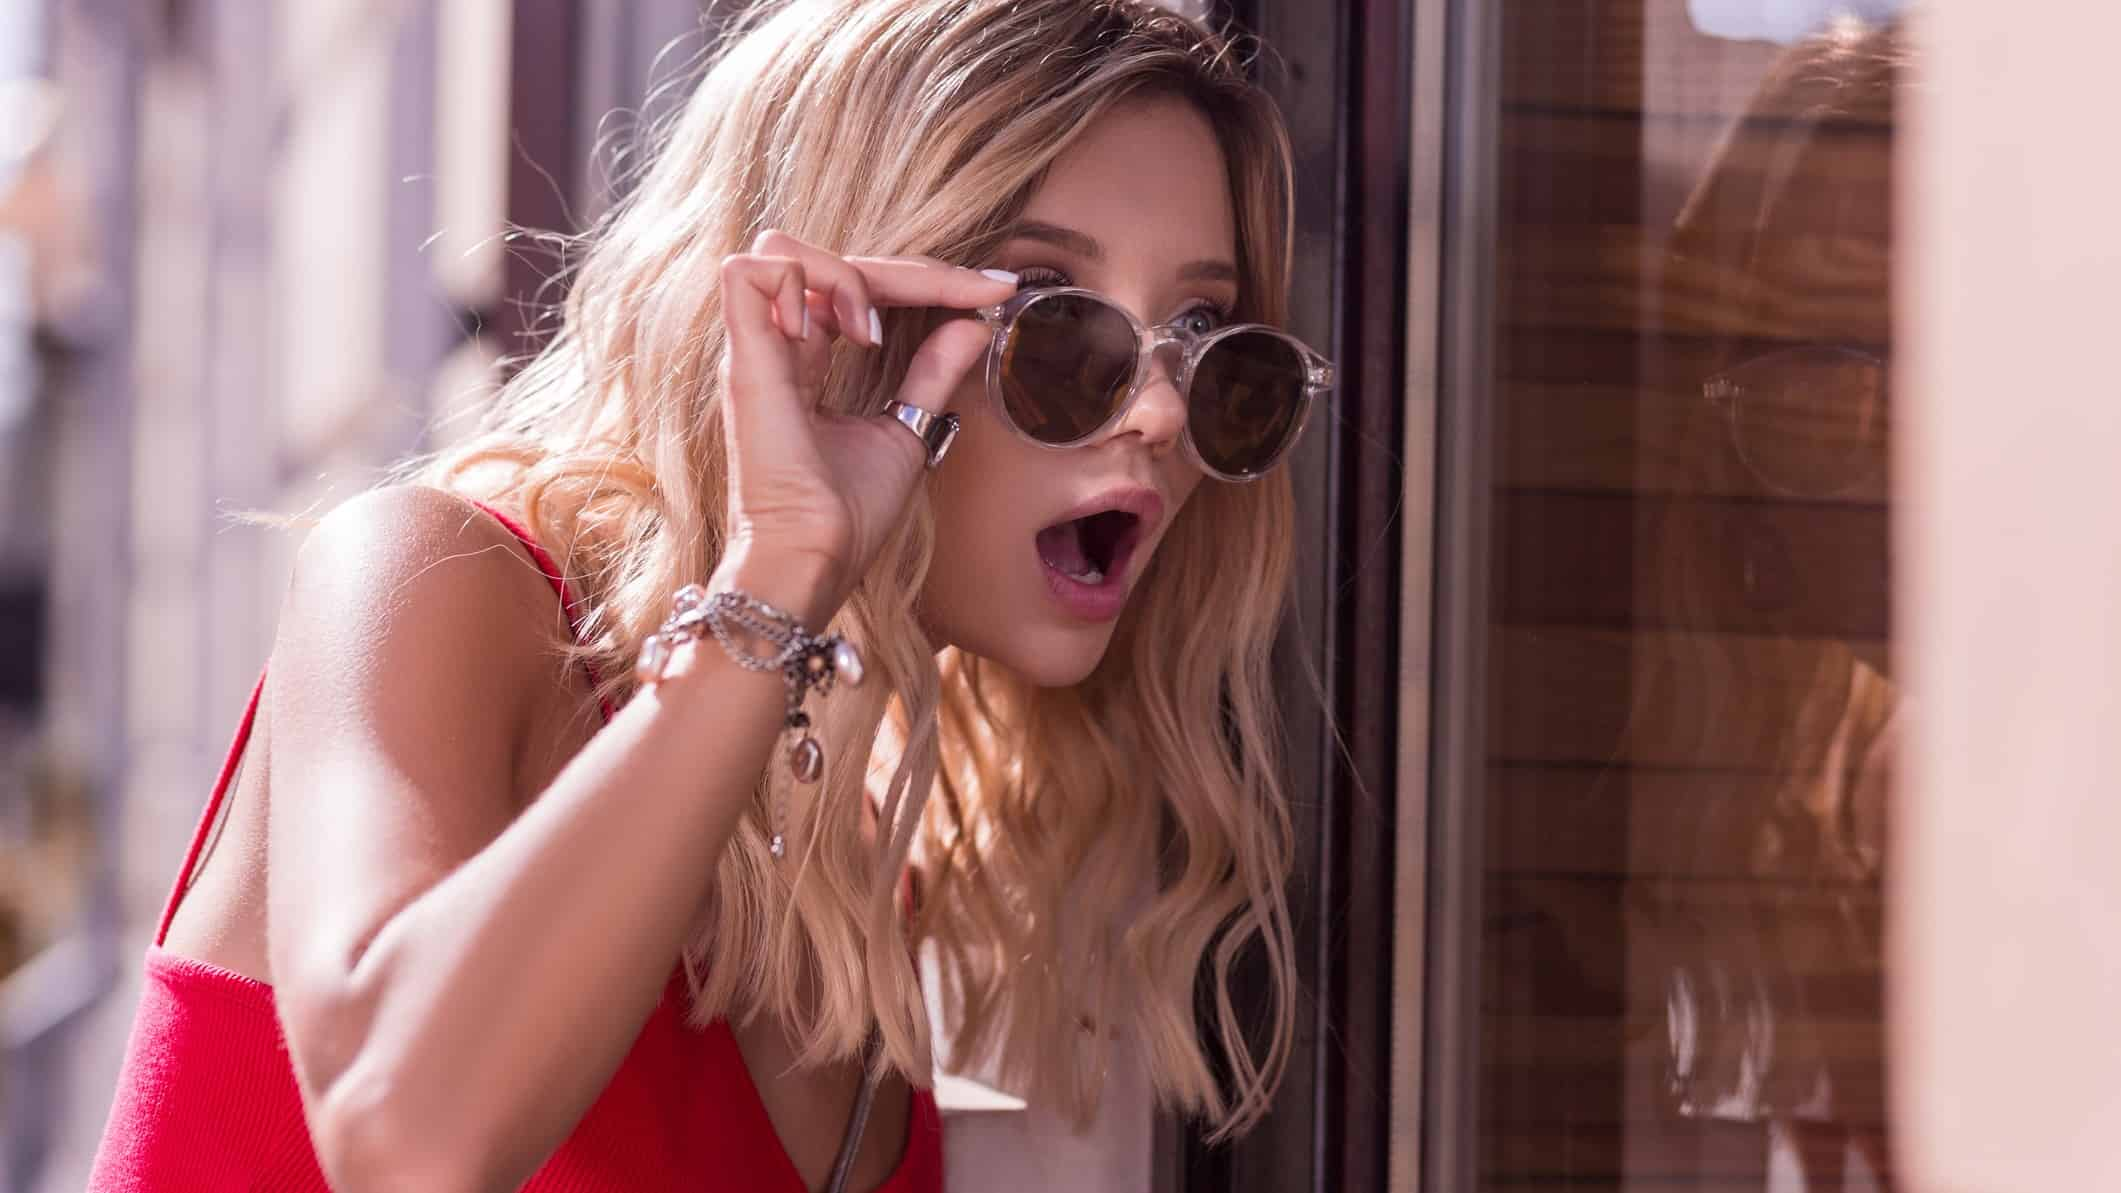 A young woman wearing a silver bracelet raises her sunglasses in amazement, indicating positive share price movement in jewellery shares